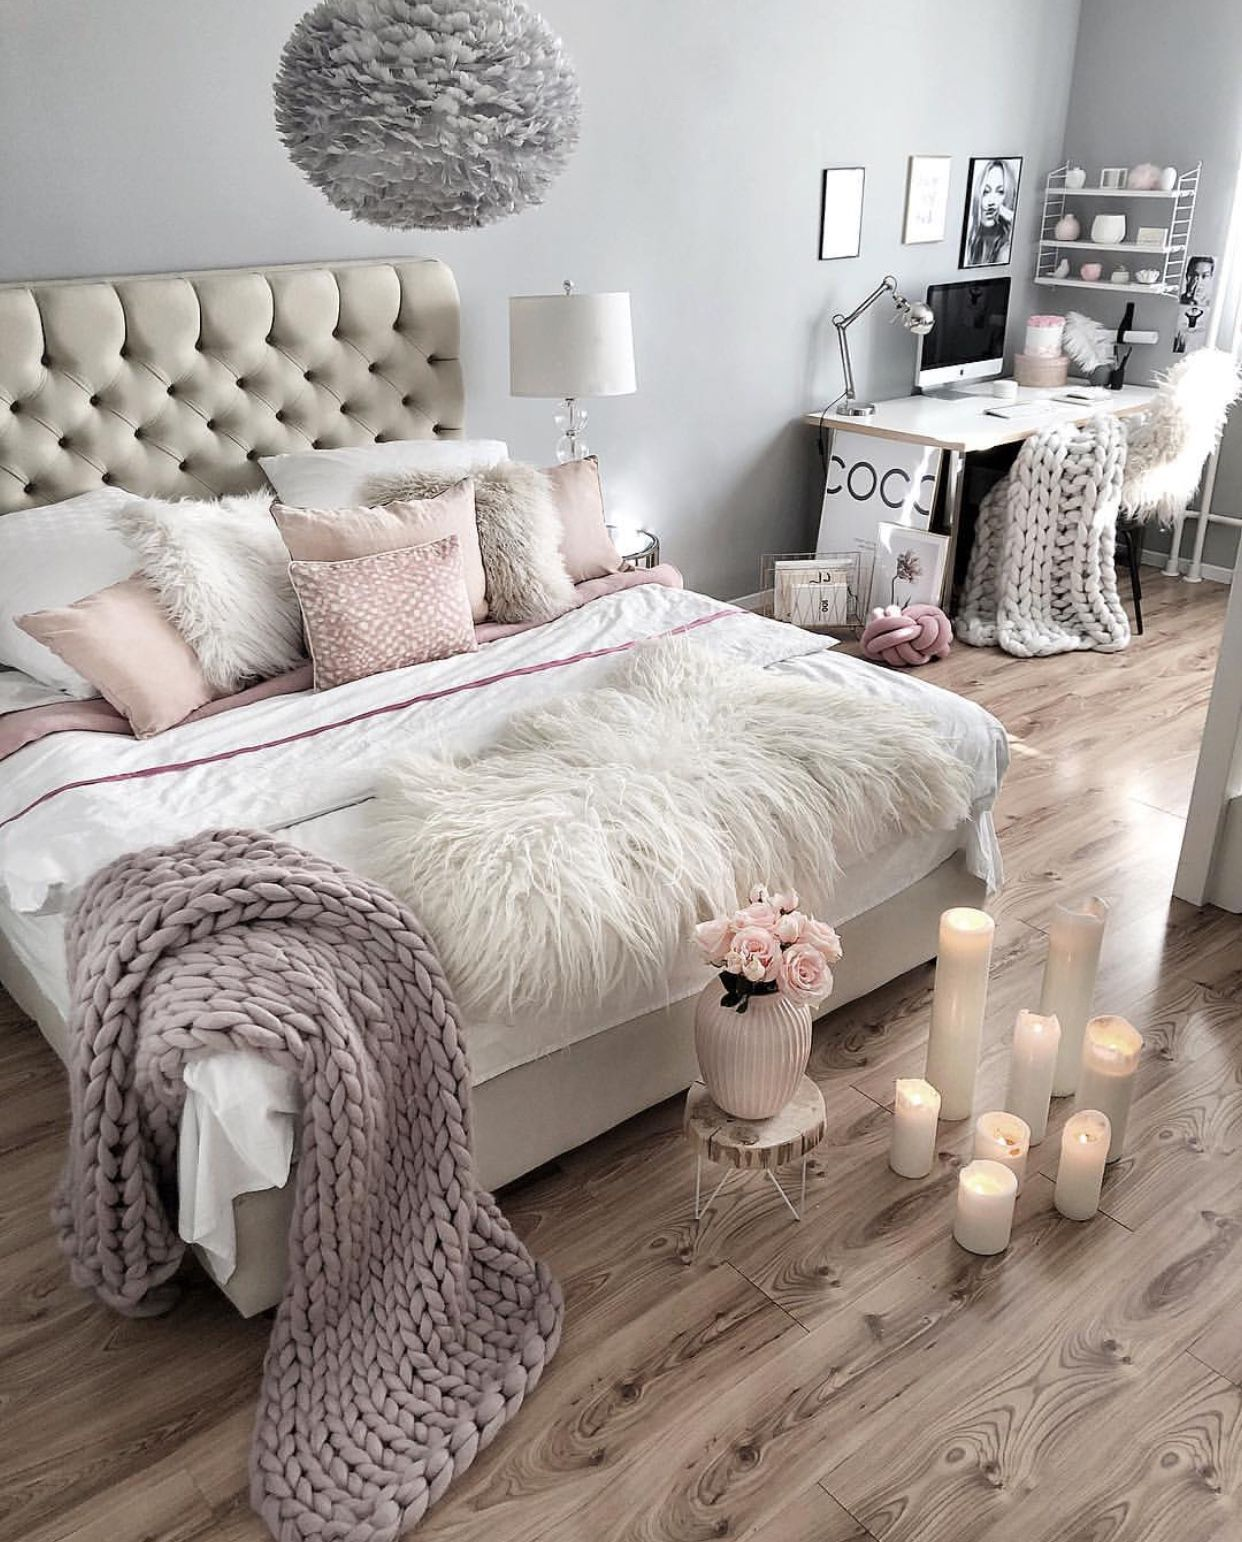 Schlafzimmer Inspiration Schlafzimmer Inspiration Interior Design Space